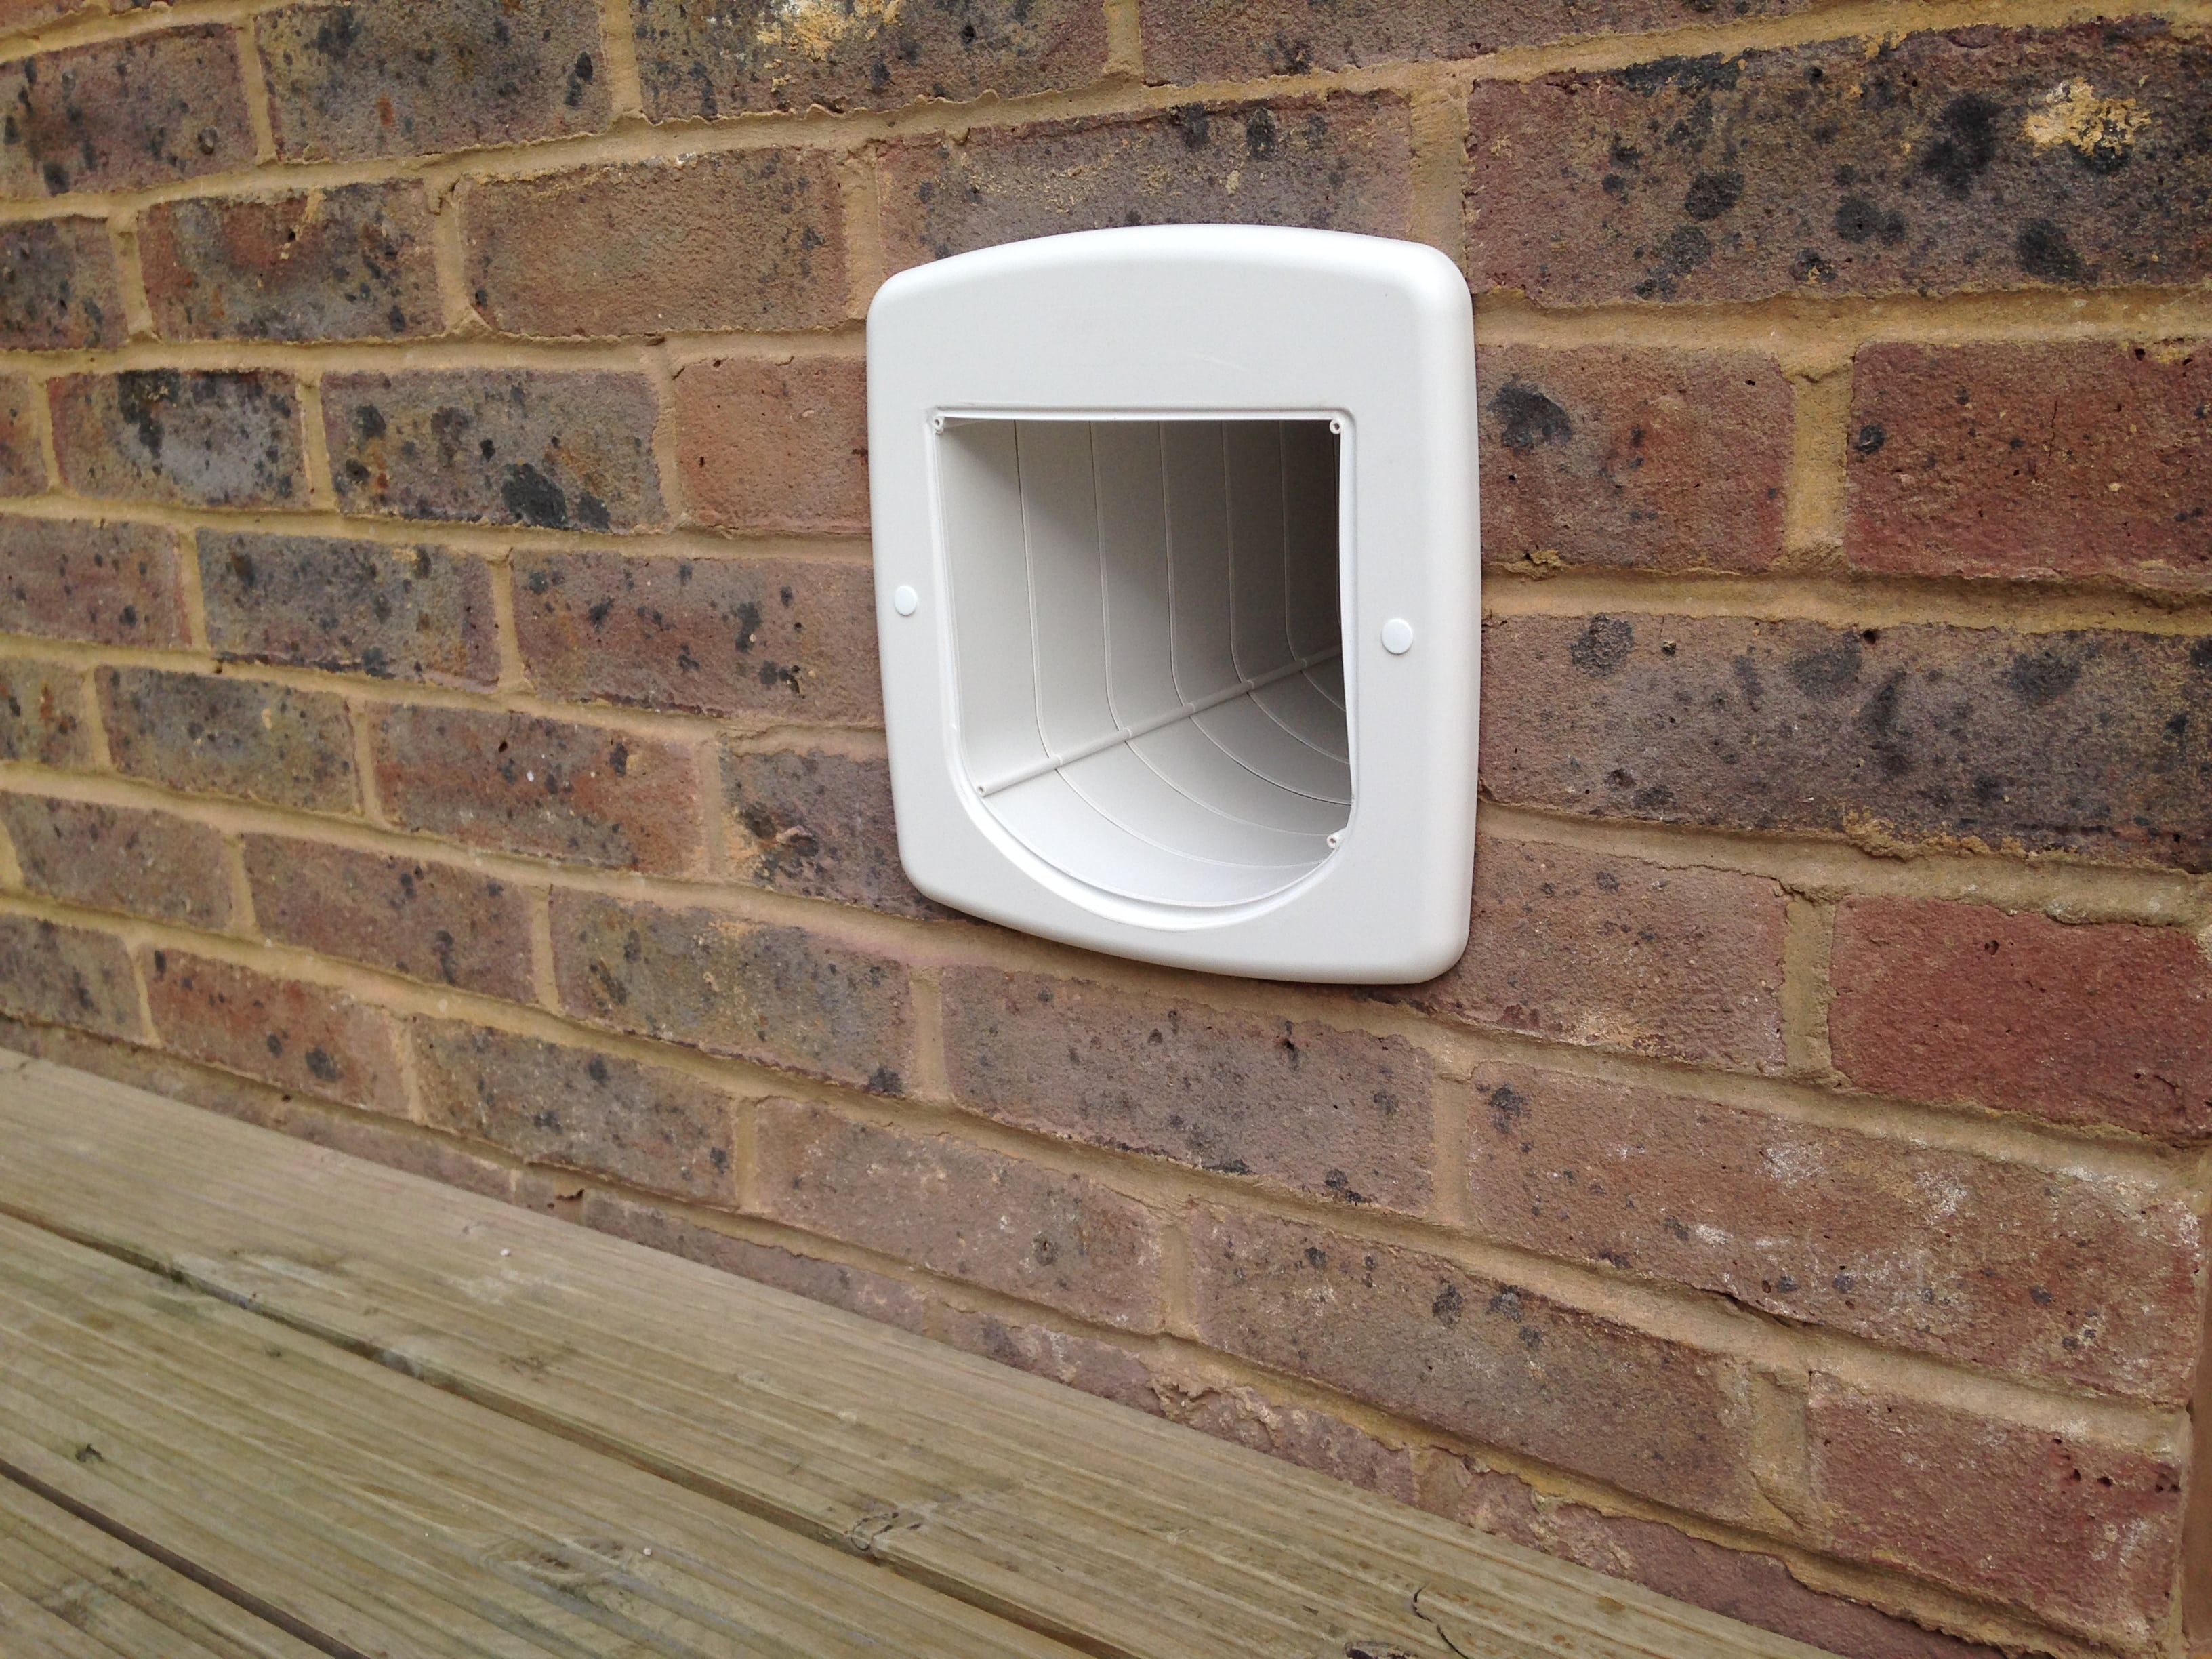 How To Let A Cat Out Without A Cat Flap